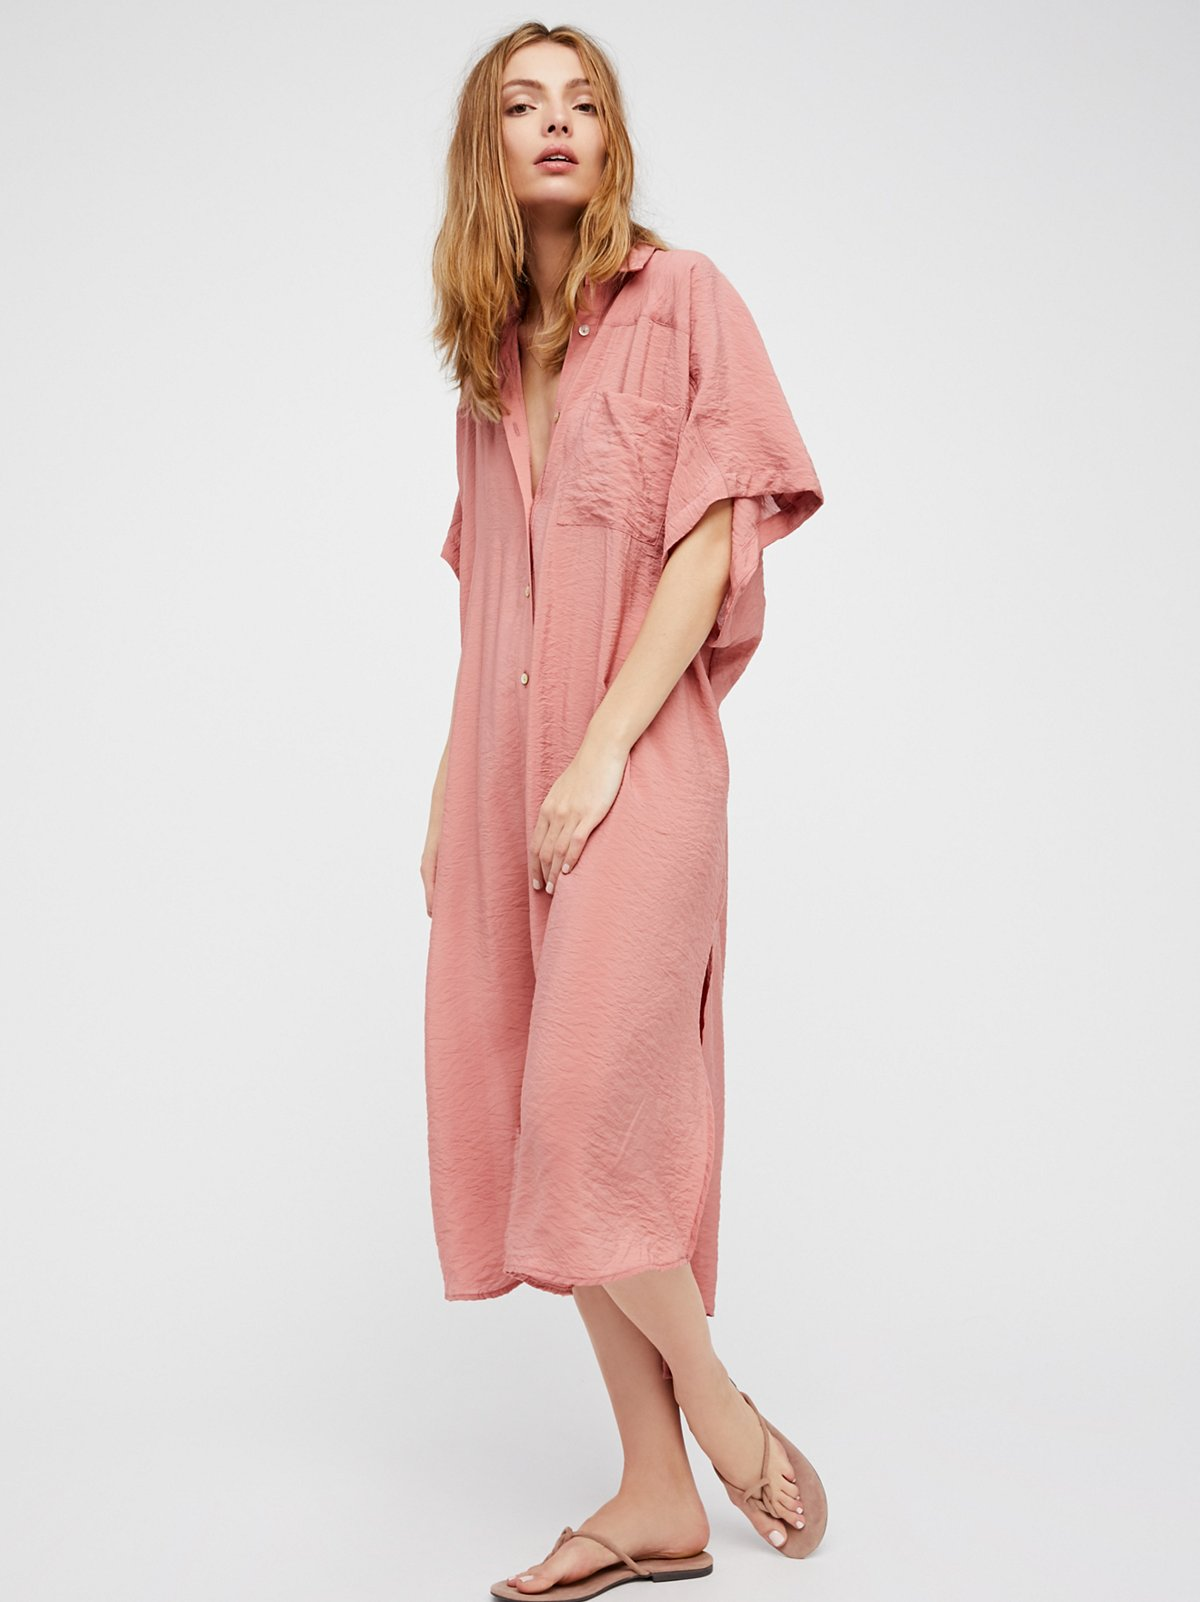 Lovely Things No.13 - Free People Blush Georgie Maxi Top